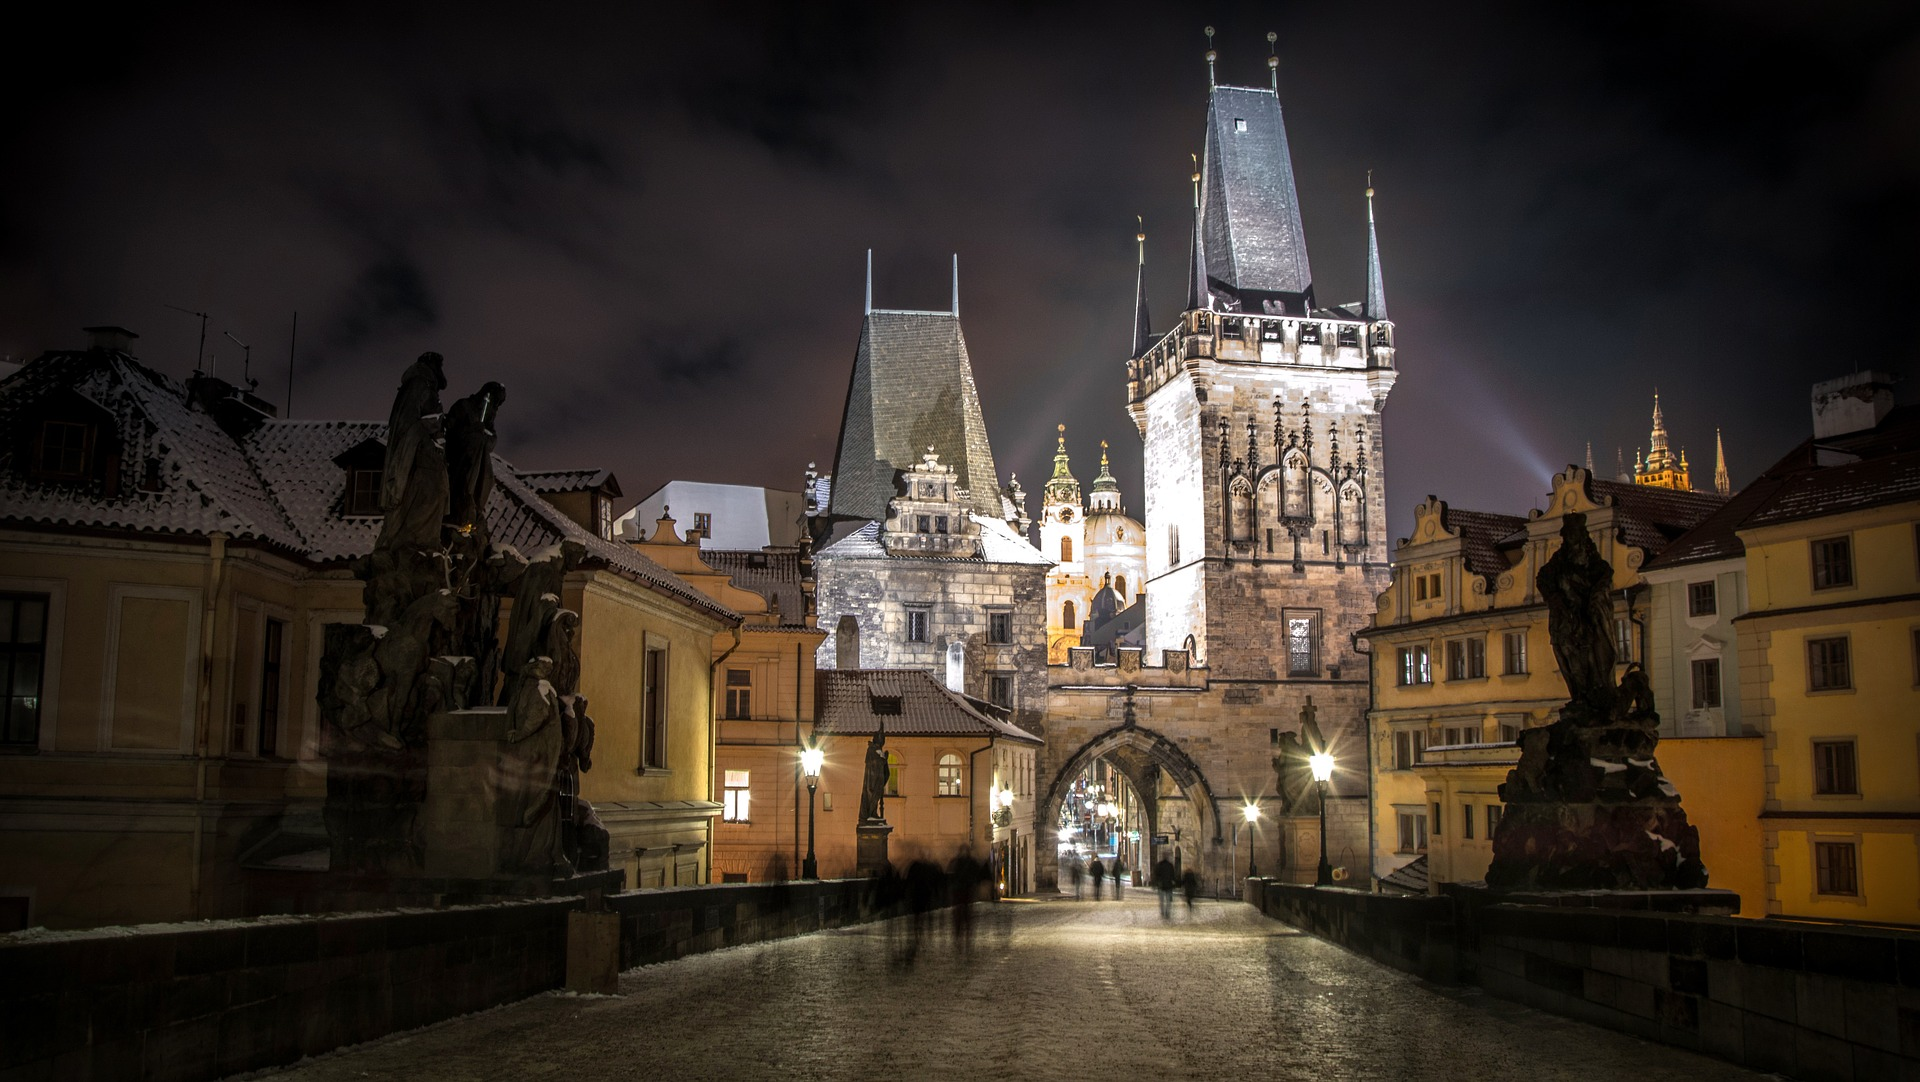 Prague, an entirely different city at night.